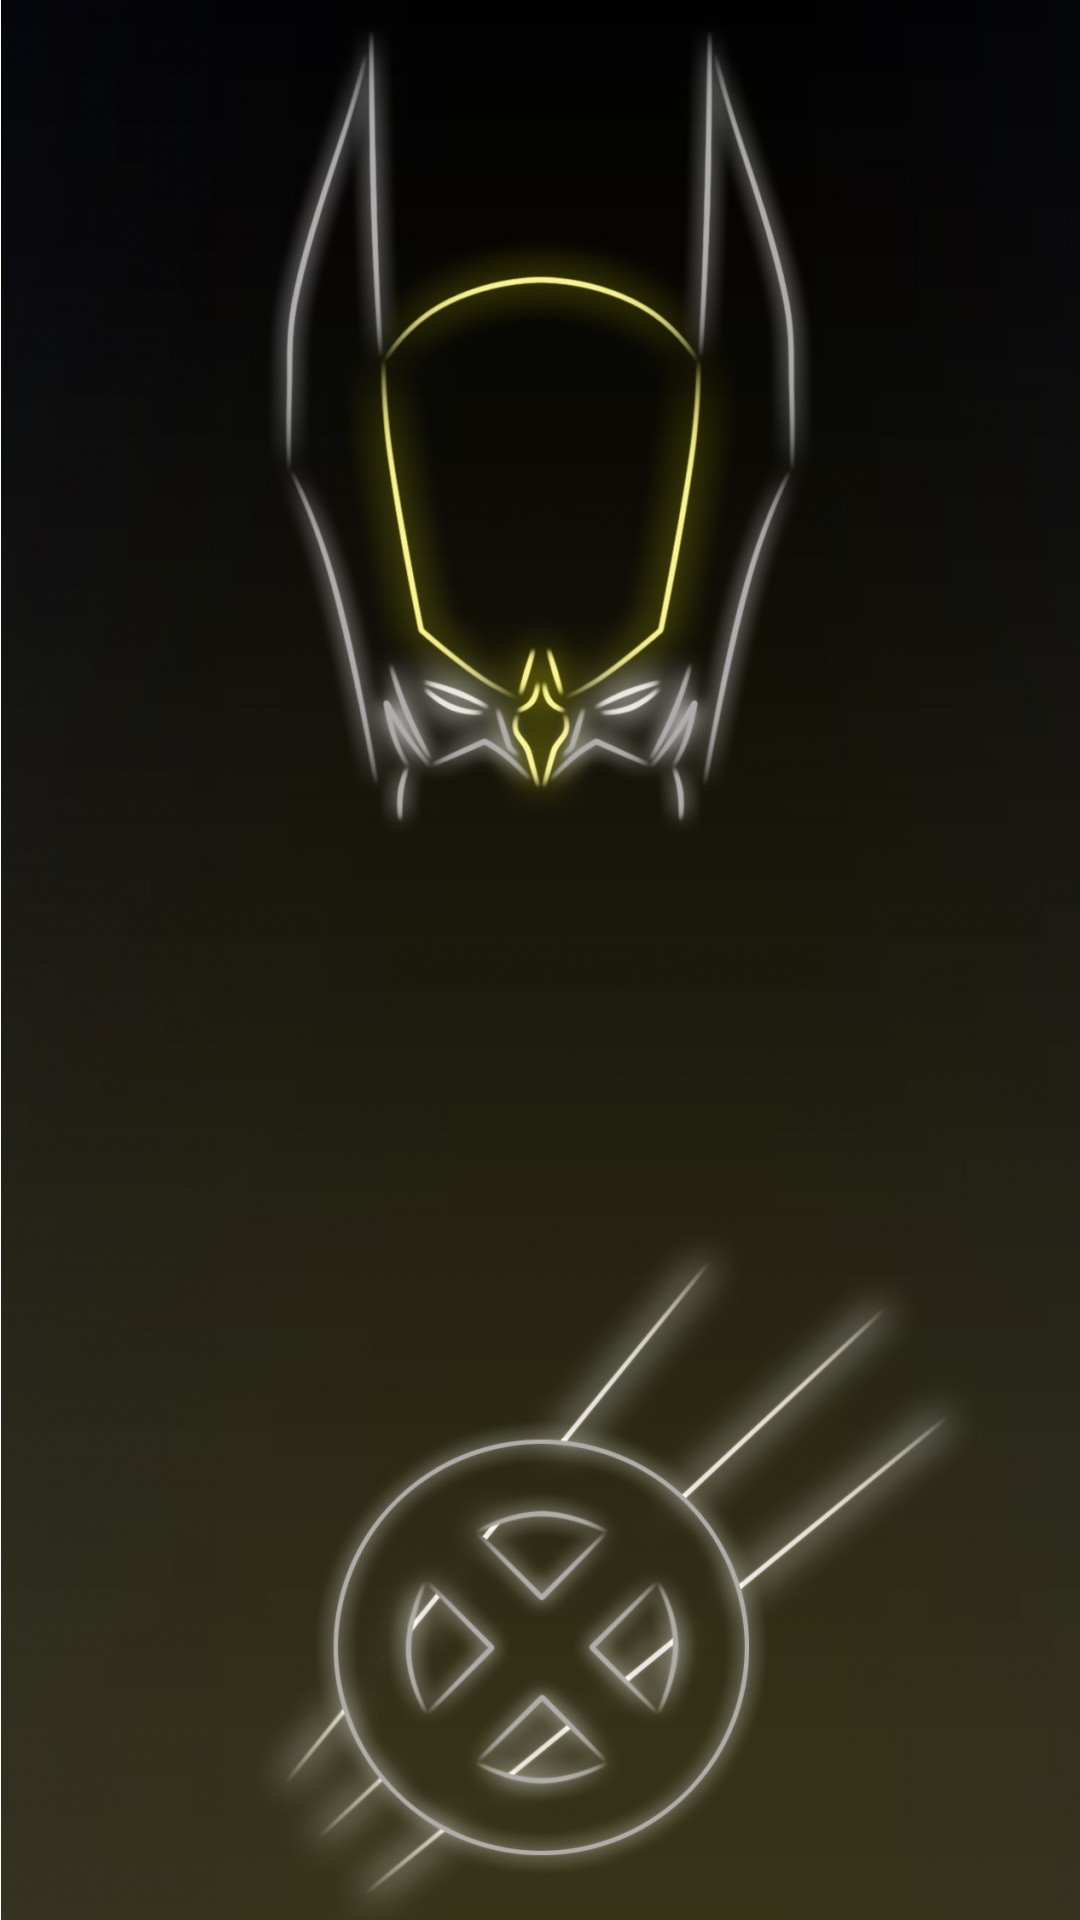 1080x1920 Wolverine-Tap-to-see-more-Superheroes-Glow-With-Neon-Light-Apple-iPhone -s-Plus-HD-back-wallpaper-wpt70010307